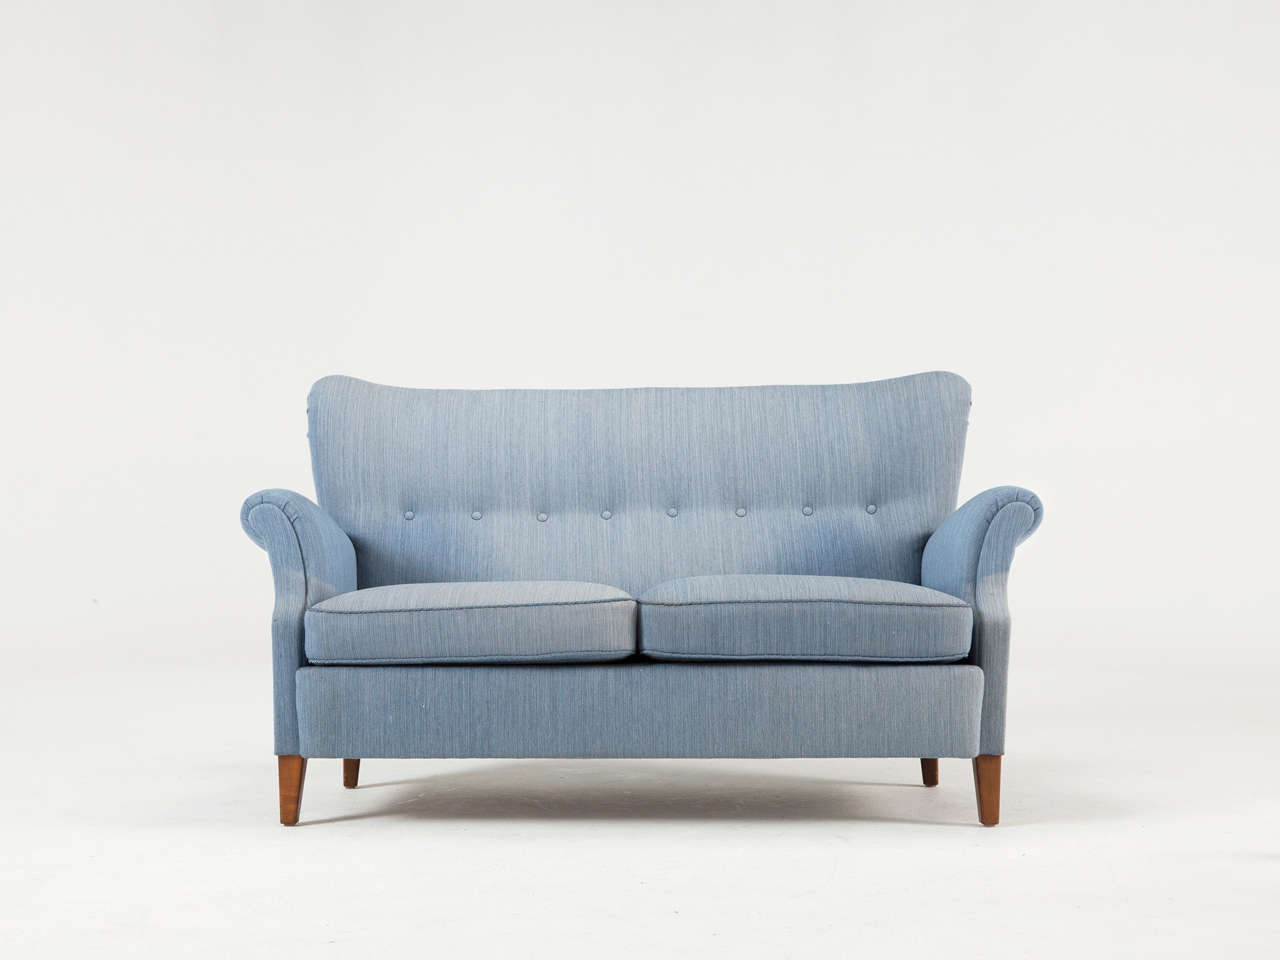 Scandinavian Modern Swedish Blue Two-Seat Sofa, 1950s For Sale